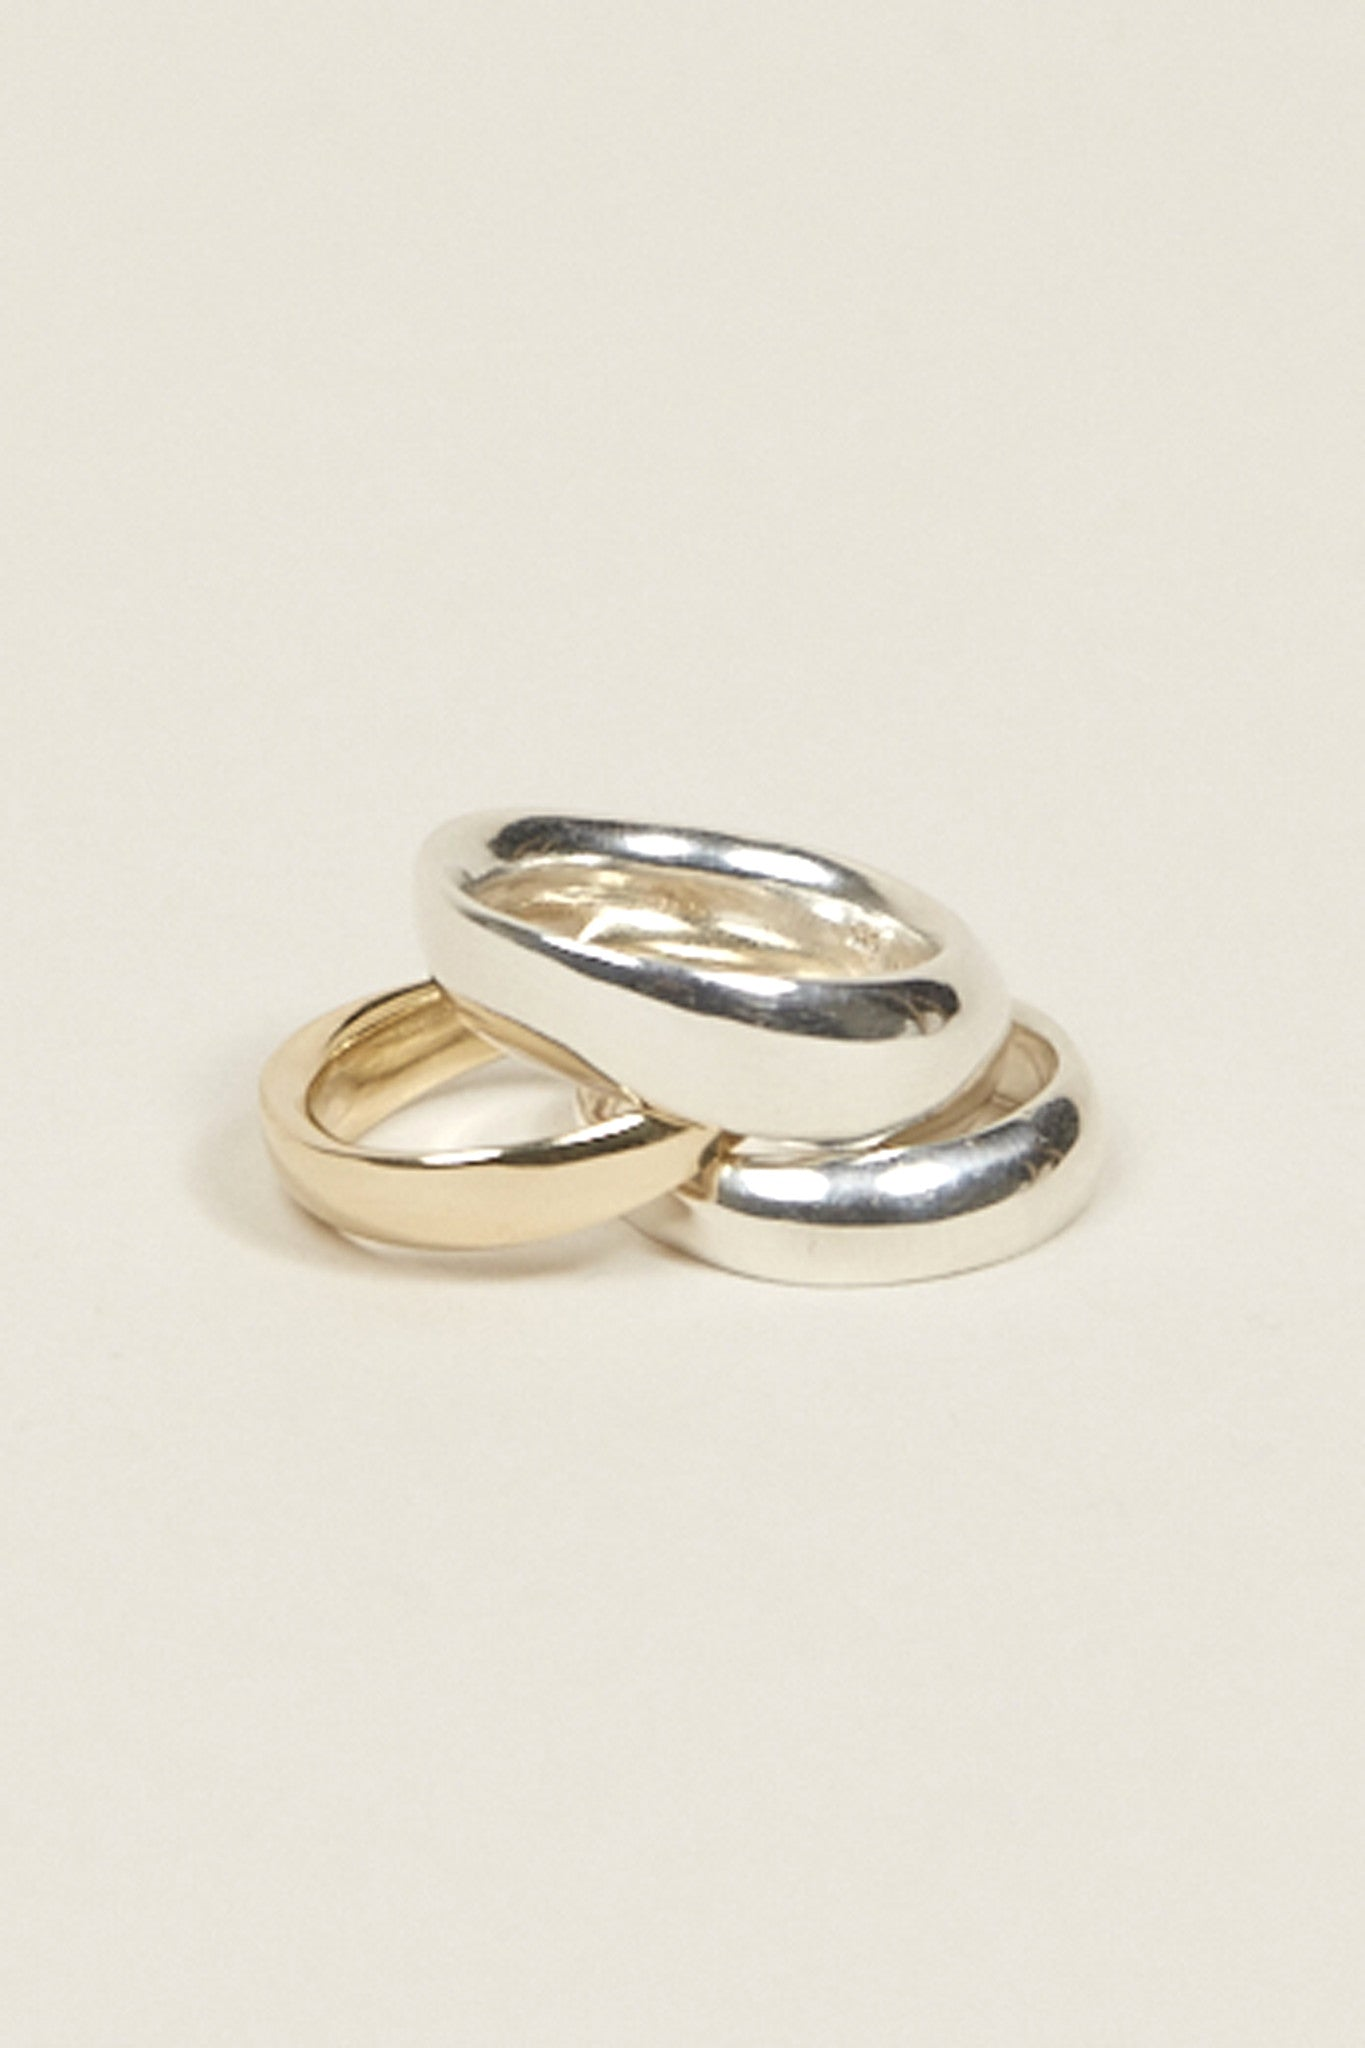 Odell ring No. 1 Narrow, 10k Gold by URSA MAJOR @ Kick Pleat - 1